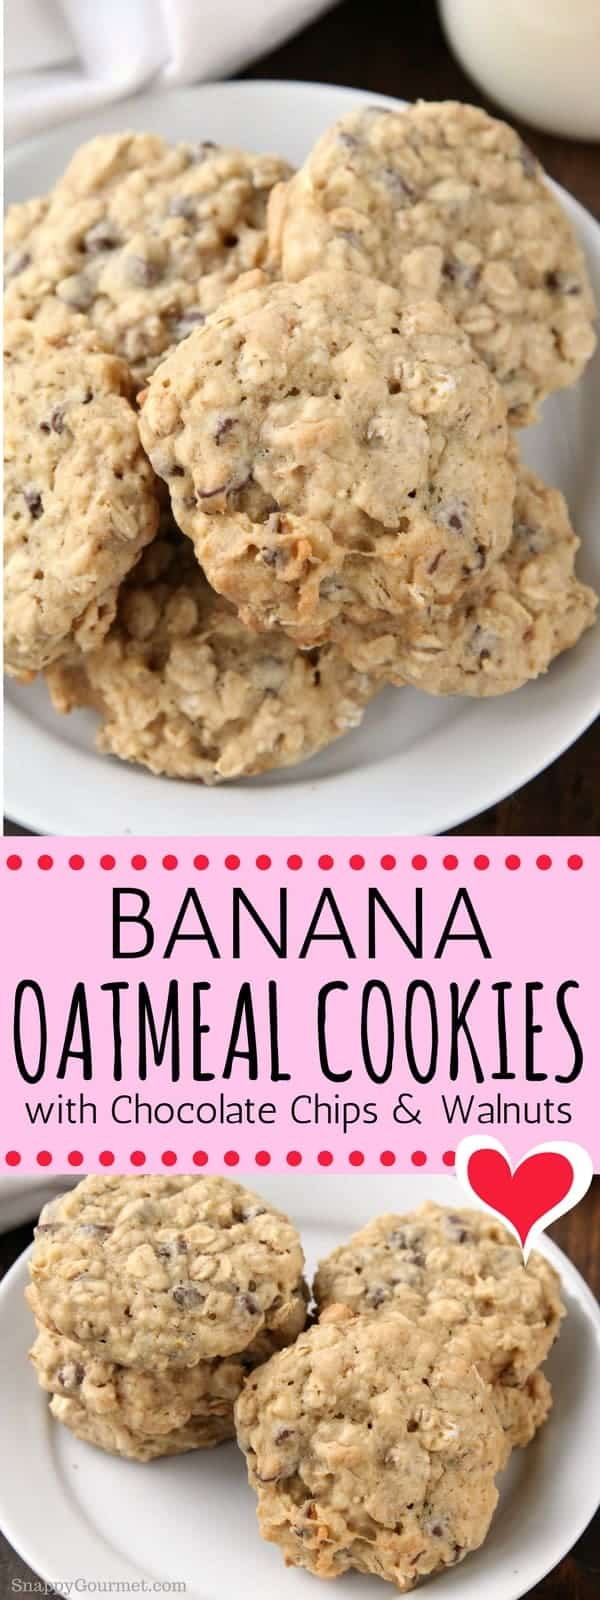 Banana Oatmeal Cookies with Chocolate Chips and Walnuts - an easy homemade oatmeal cookie recipe full of banana, oats, chocolate chips, and walnuts